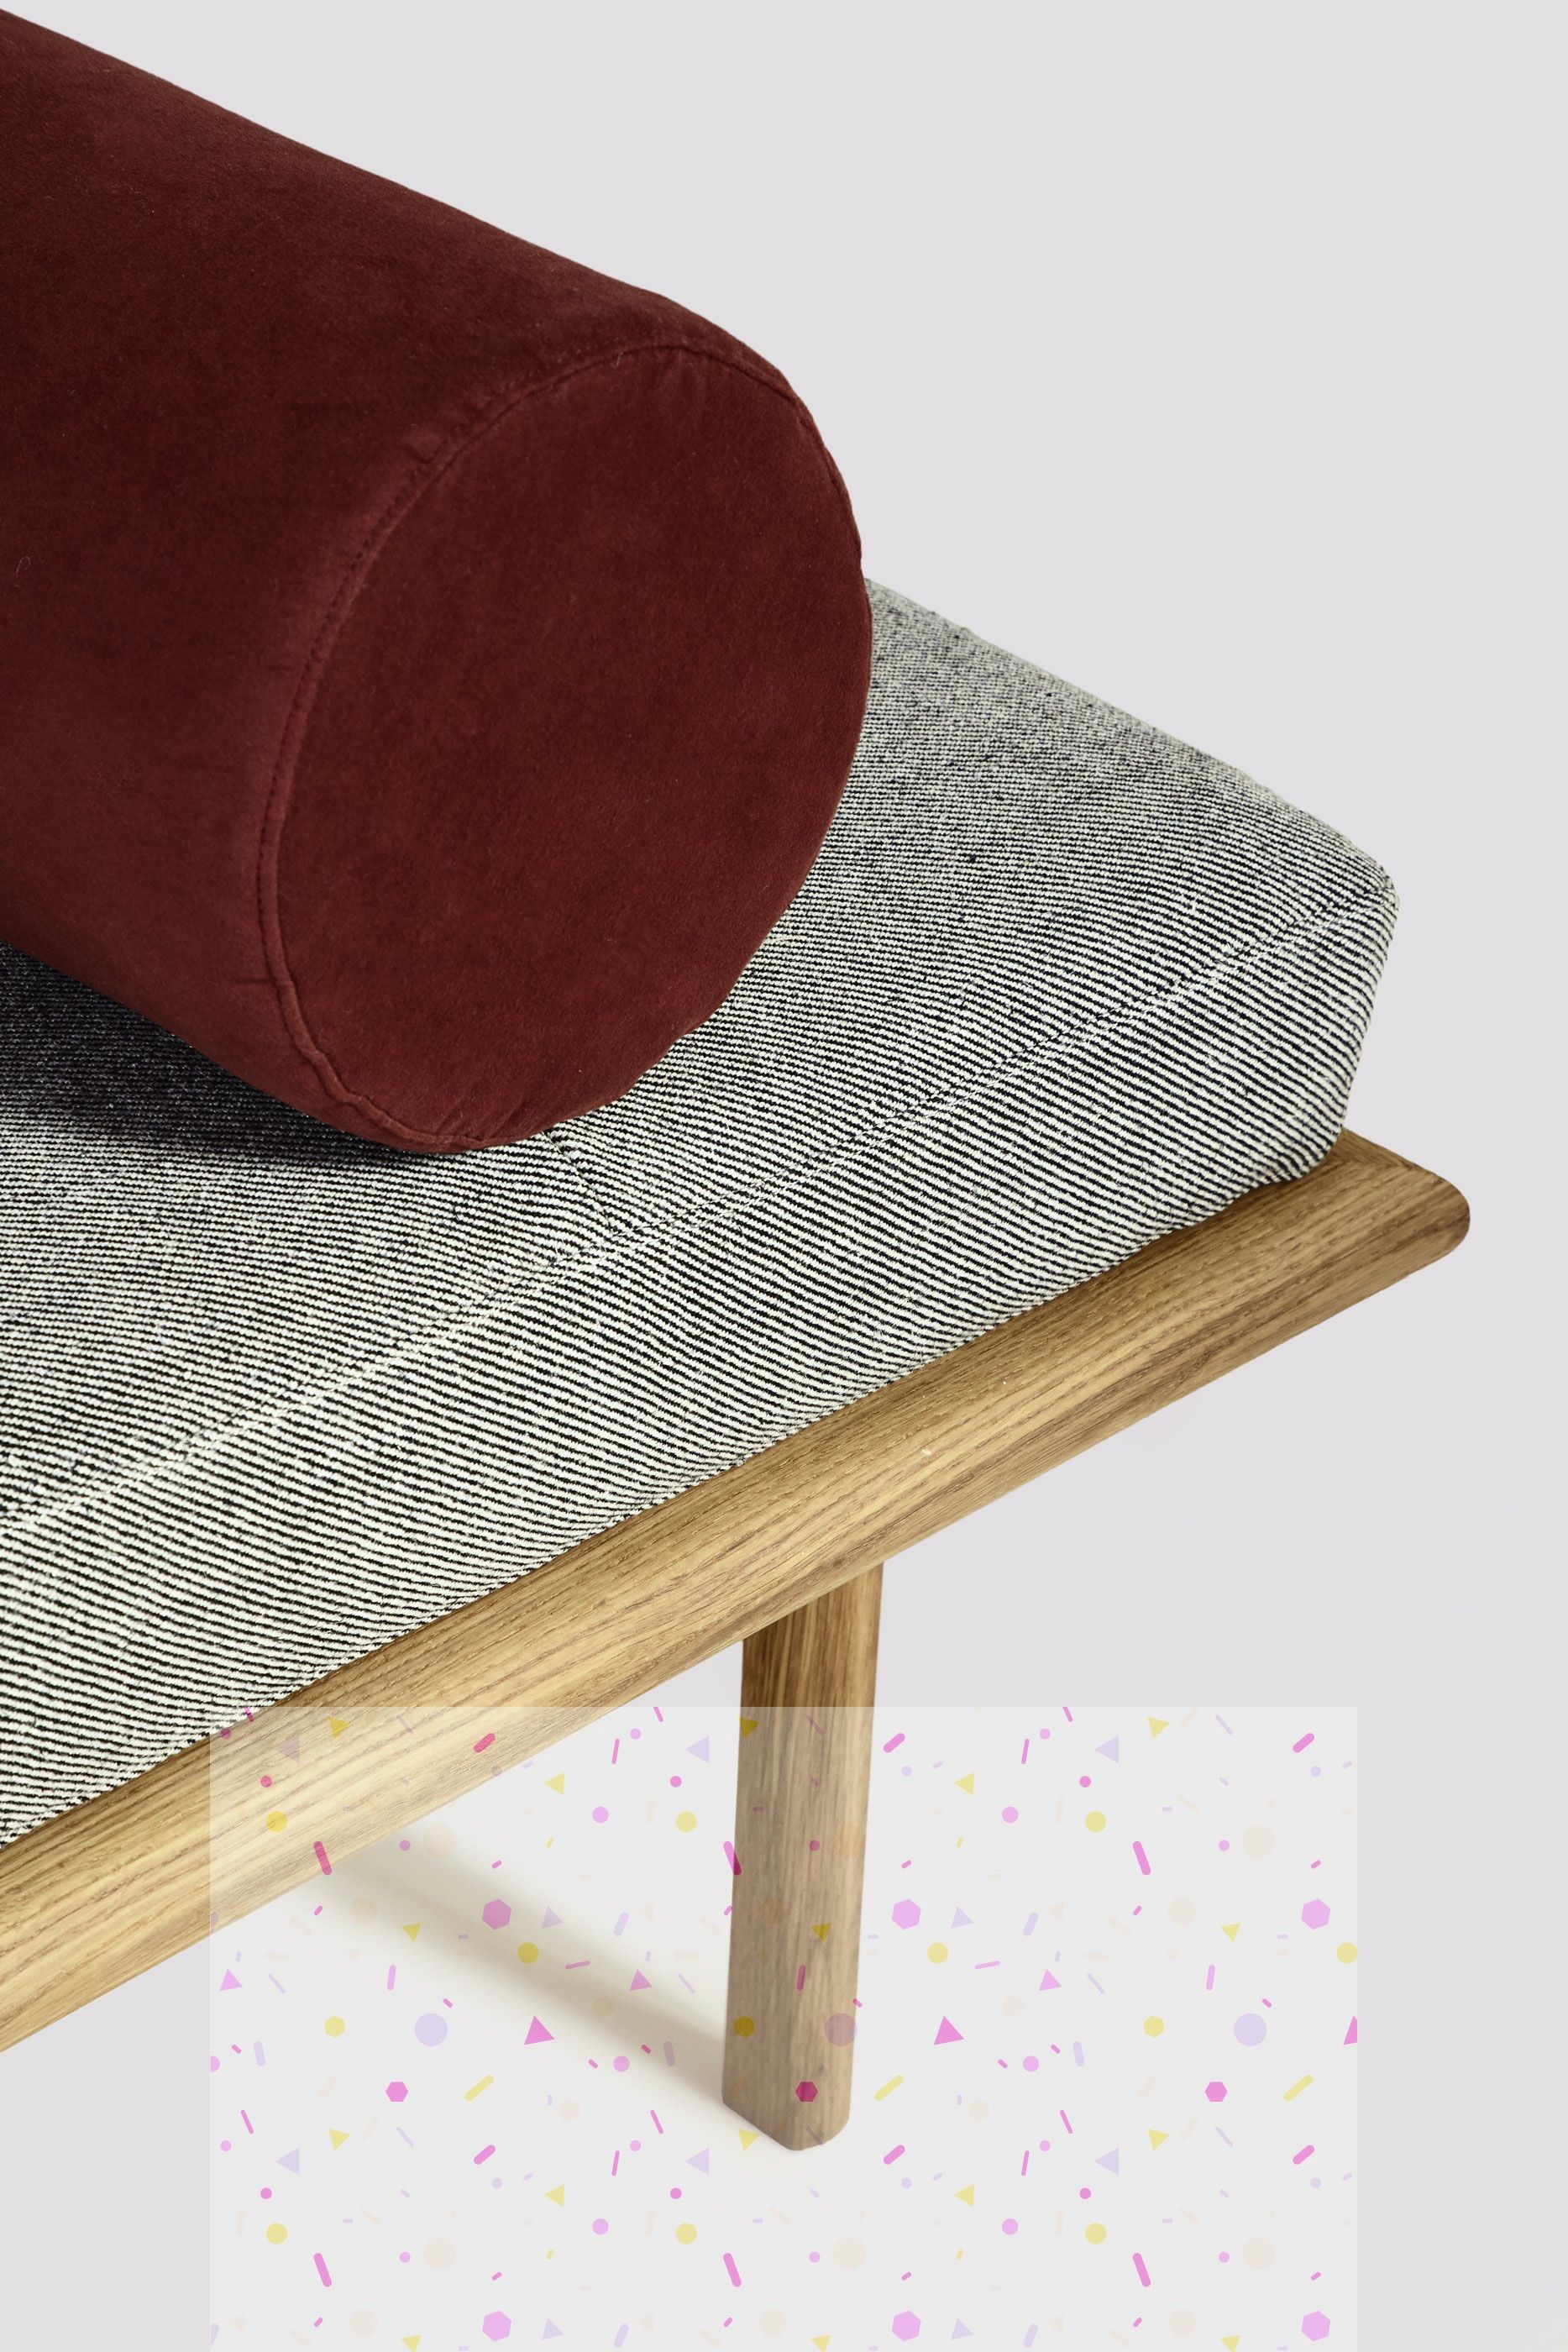 Astonishing tips upholstery patchwork bedrooms upholstery panel furniture custom upholstery cushions upholstery stain remover red wines